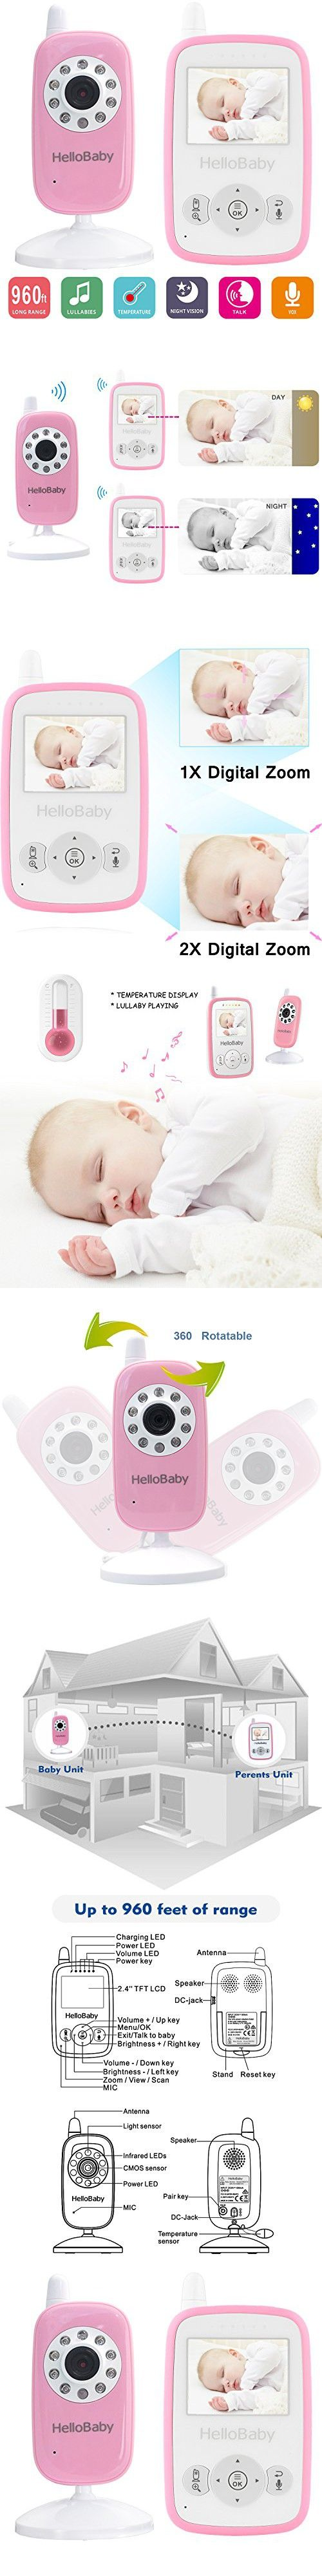 HelloBaby Wireless Video Baby monitor Security Camera with 2-way Talk & Night Vision and Temperature Monitor, Pink & White